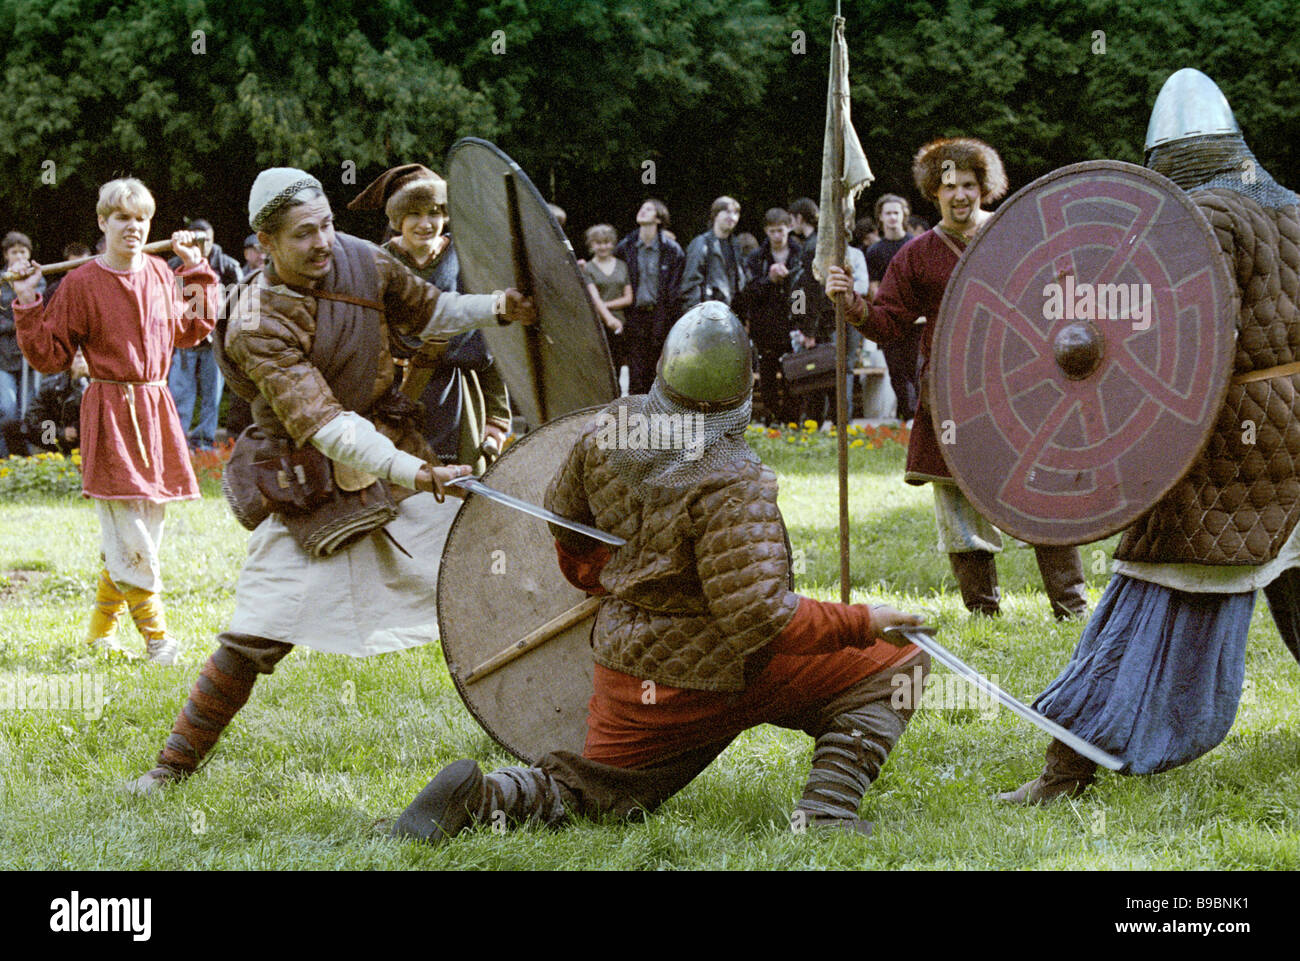 Popular games and competitions during City Day celebrations - Stock Image